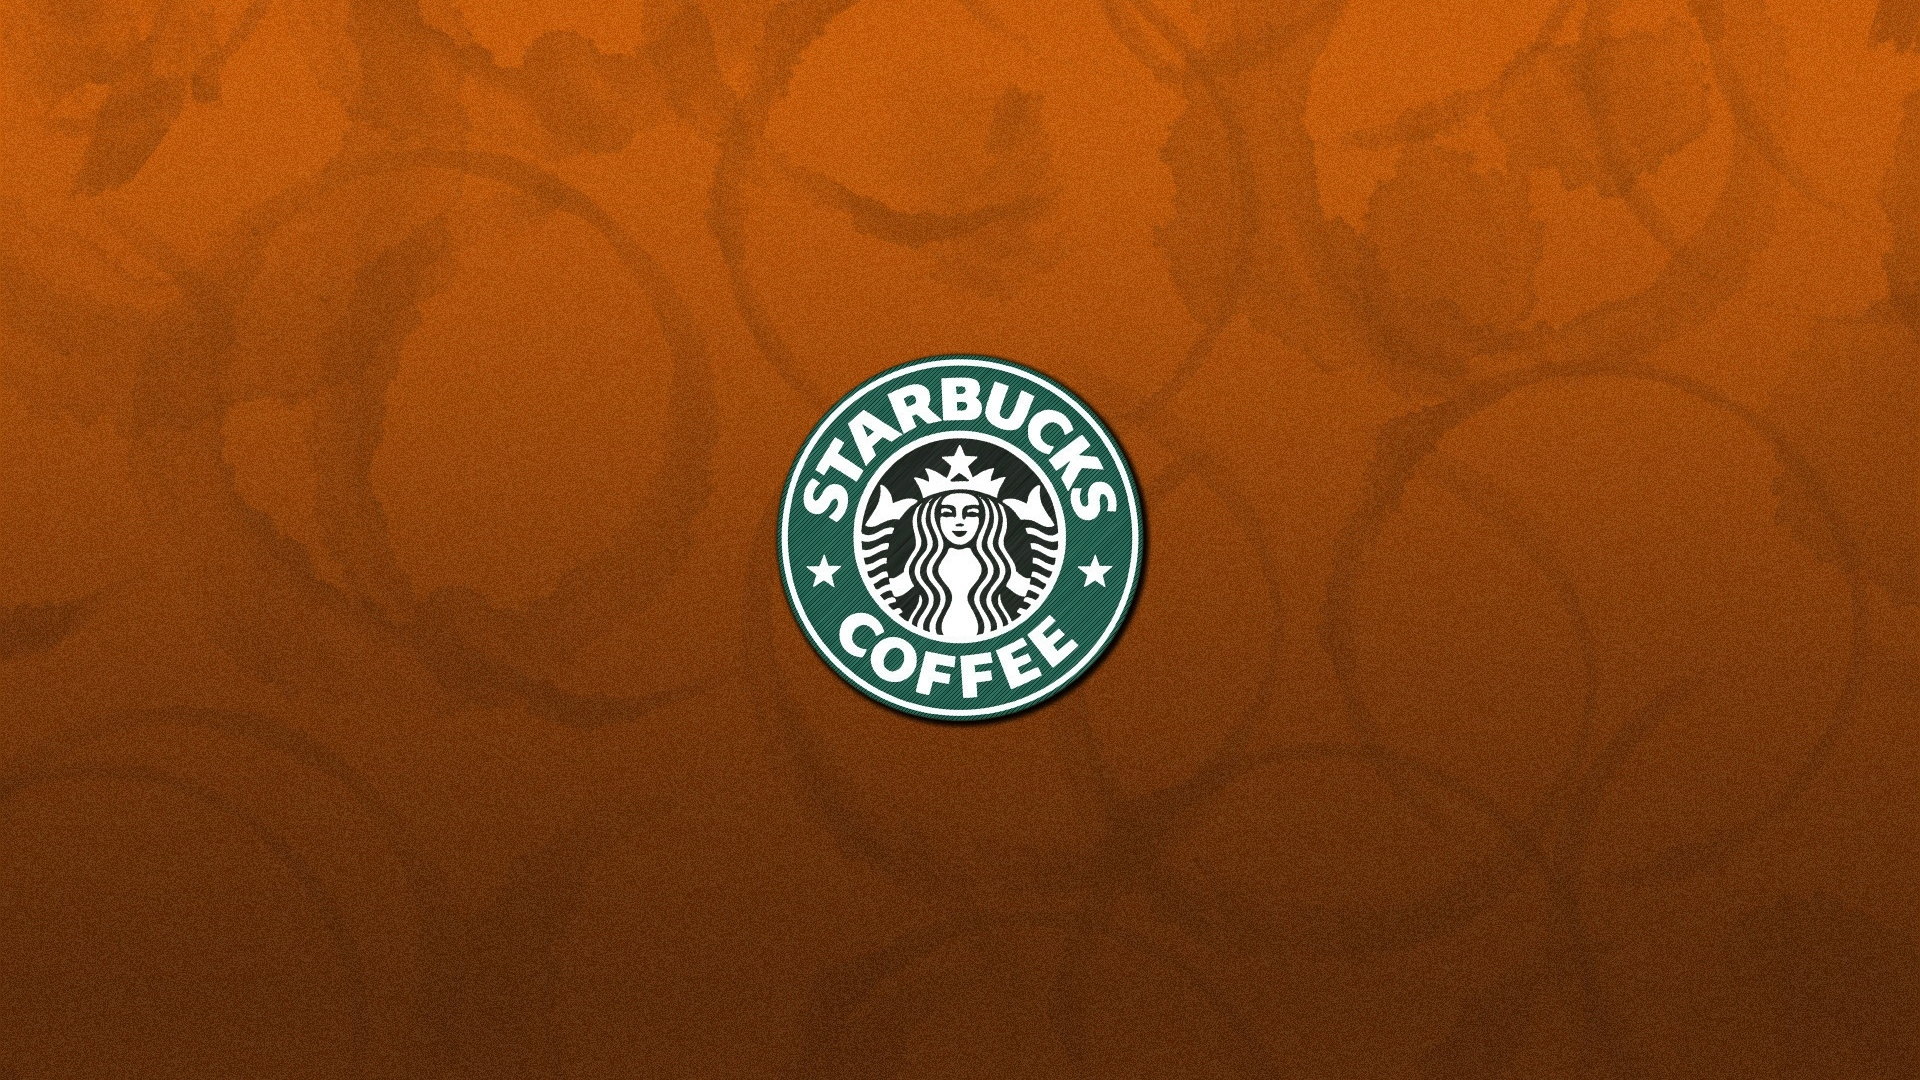 starbucks logo wallpaper 53512